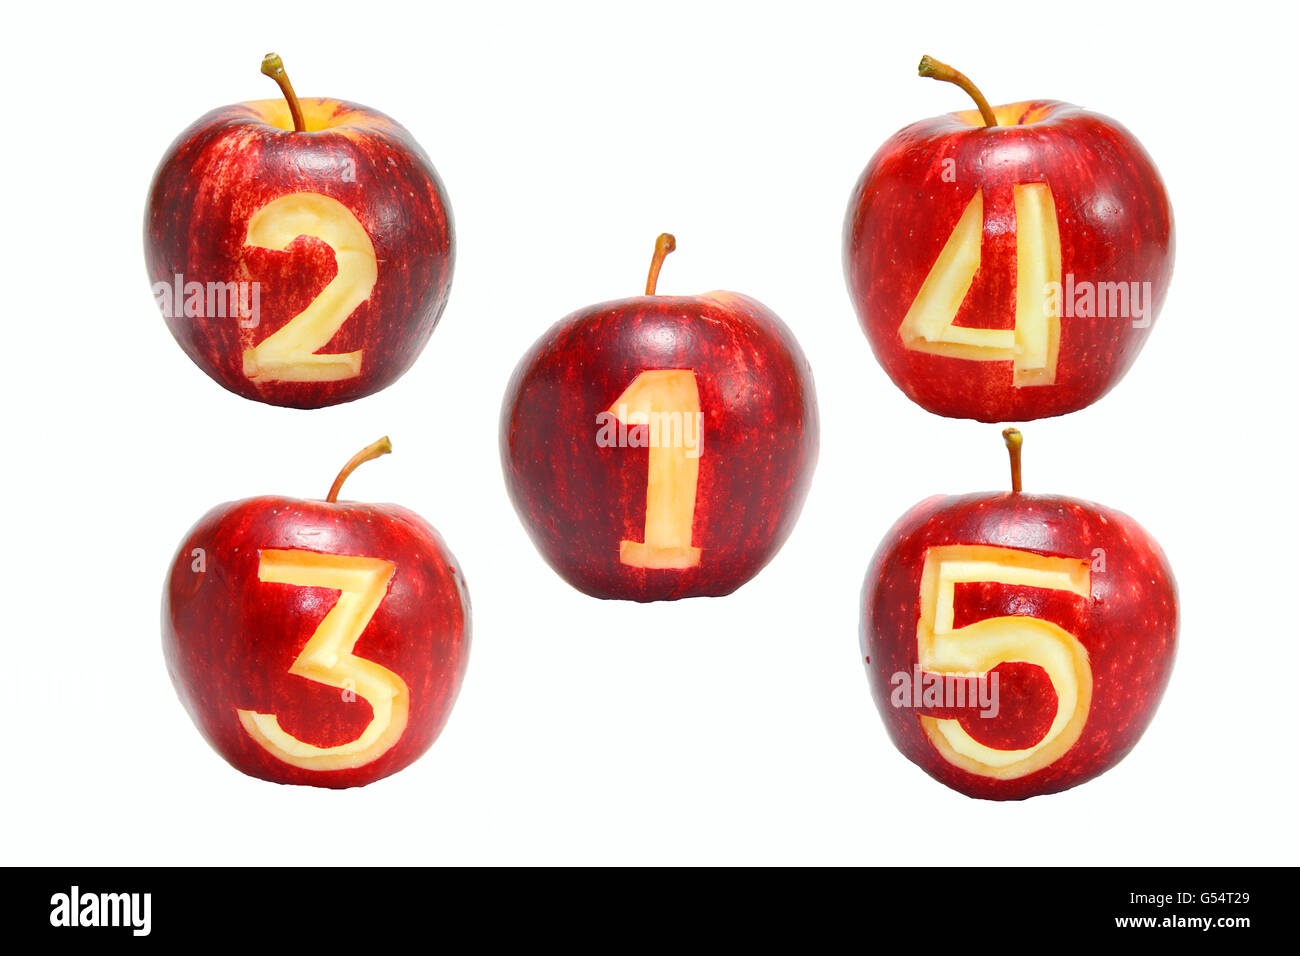 Number 1 to 5 symbol on apples - Stock Image